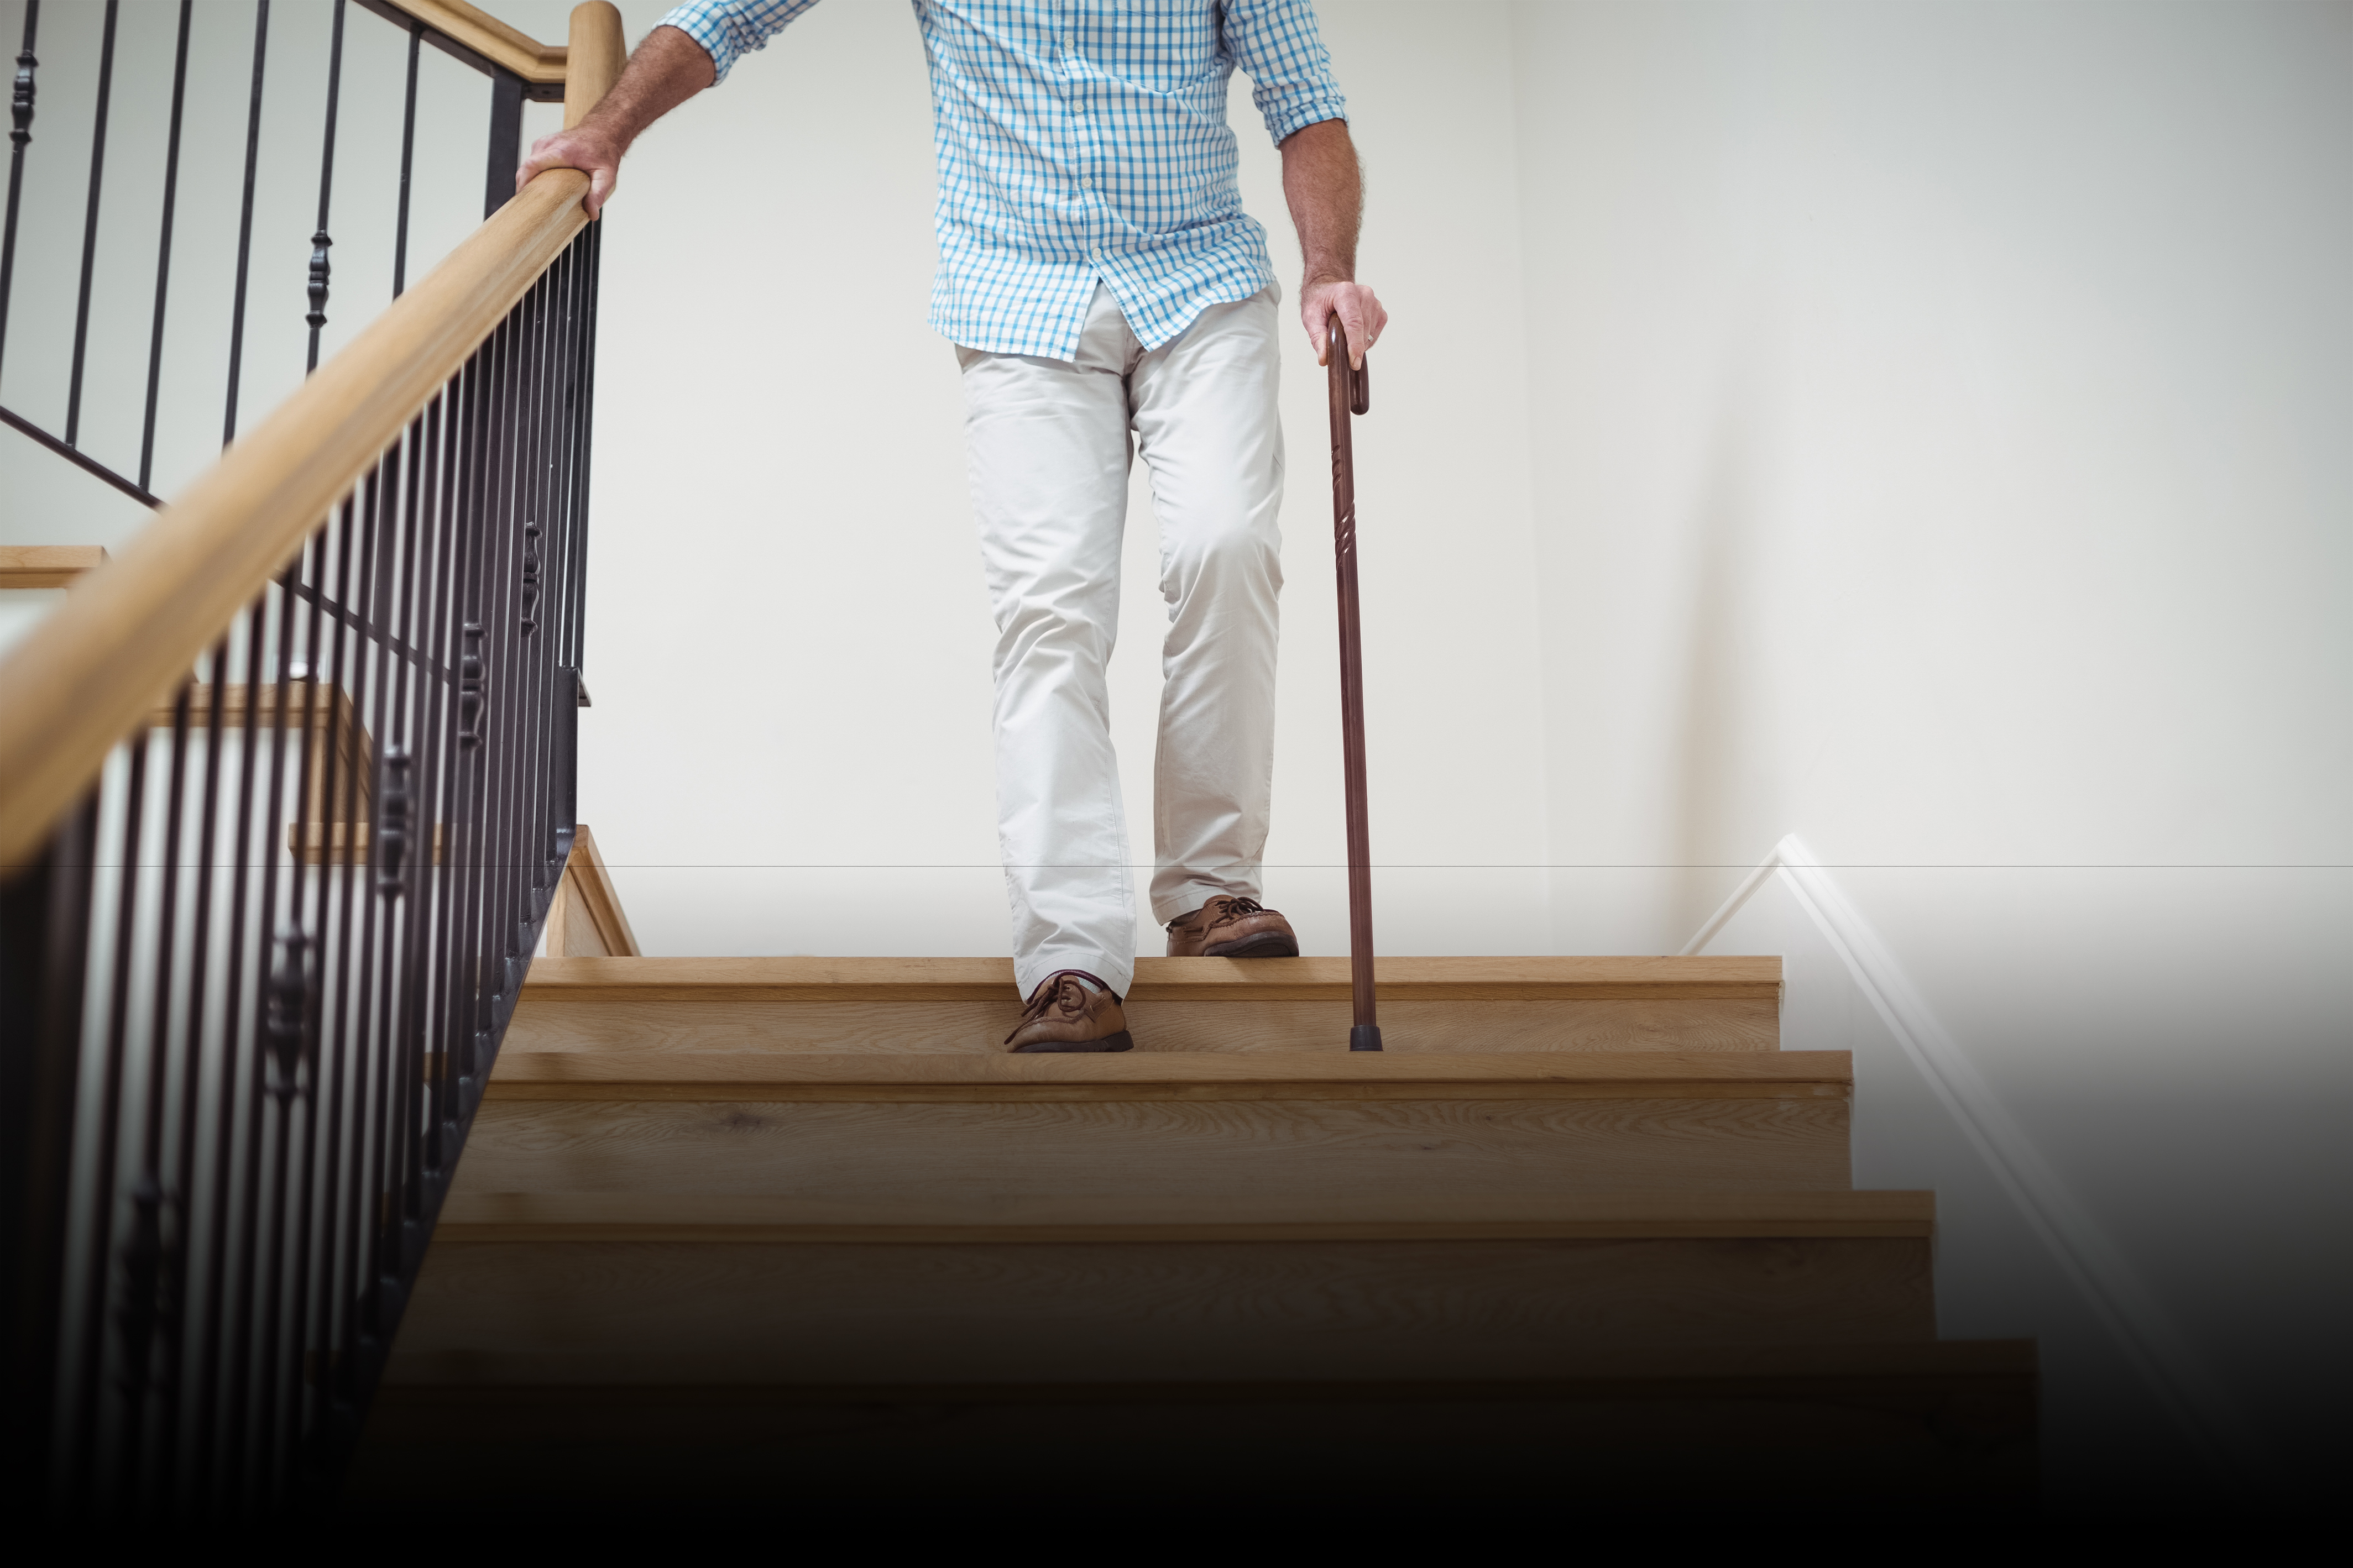 Stair Lift for Elderly: Perfect Solution to Your Stairs Problem